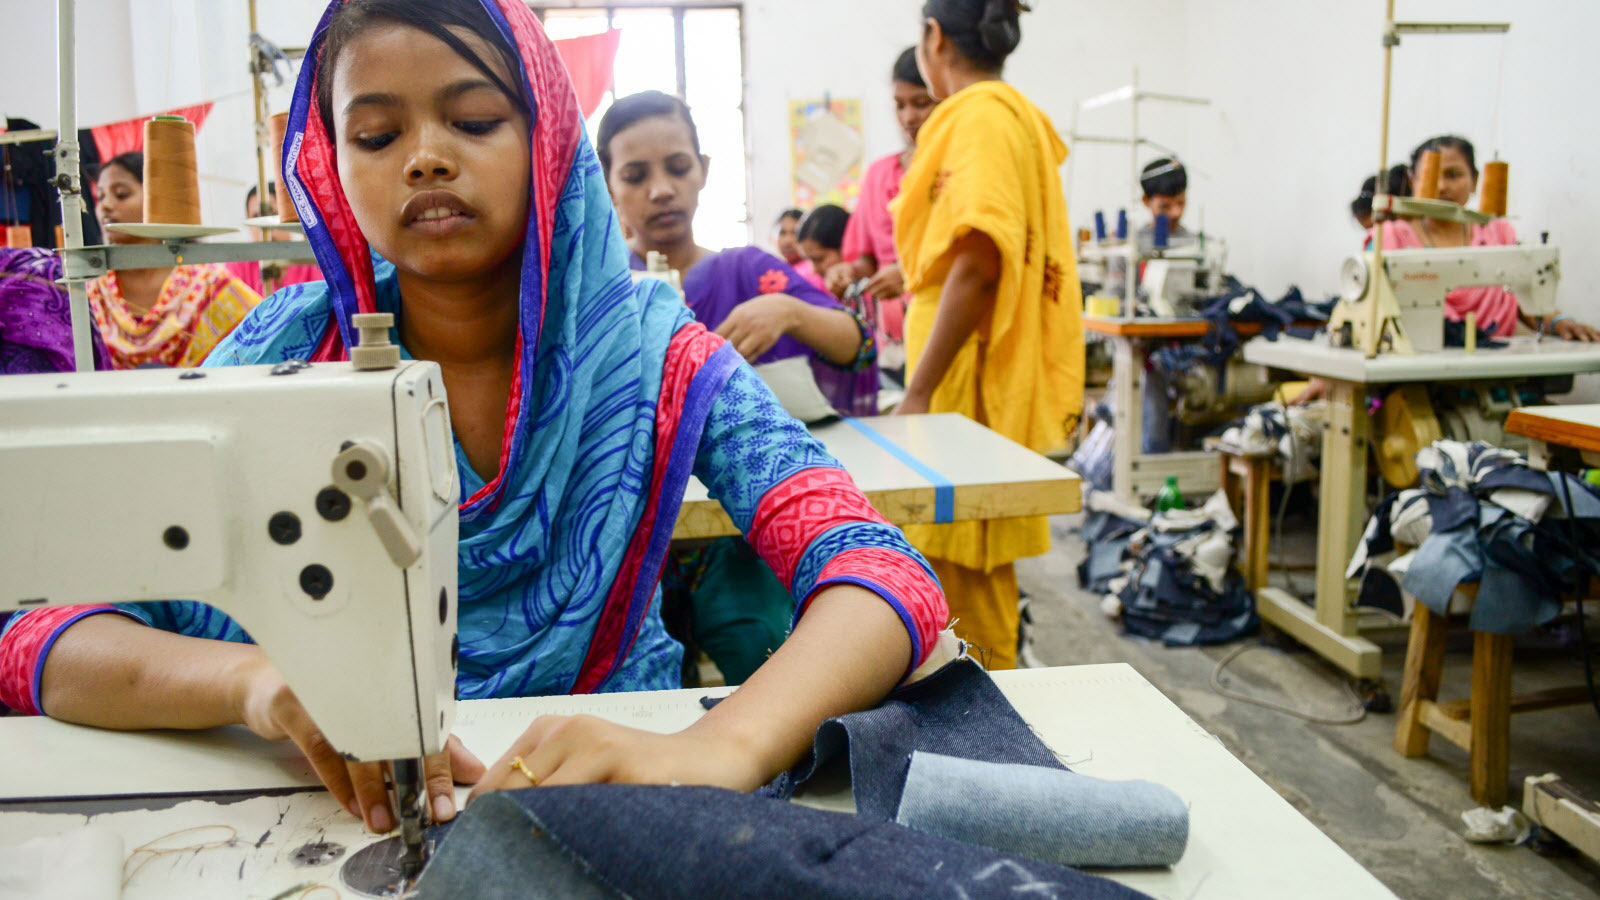 A look at child labor inside a garment factory | World Vision